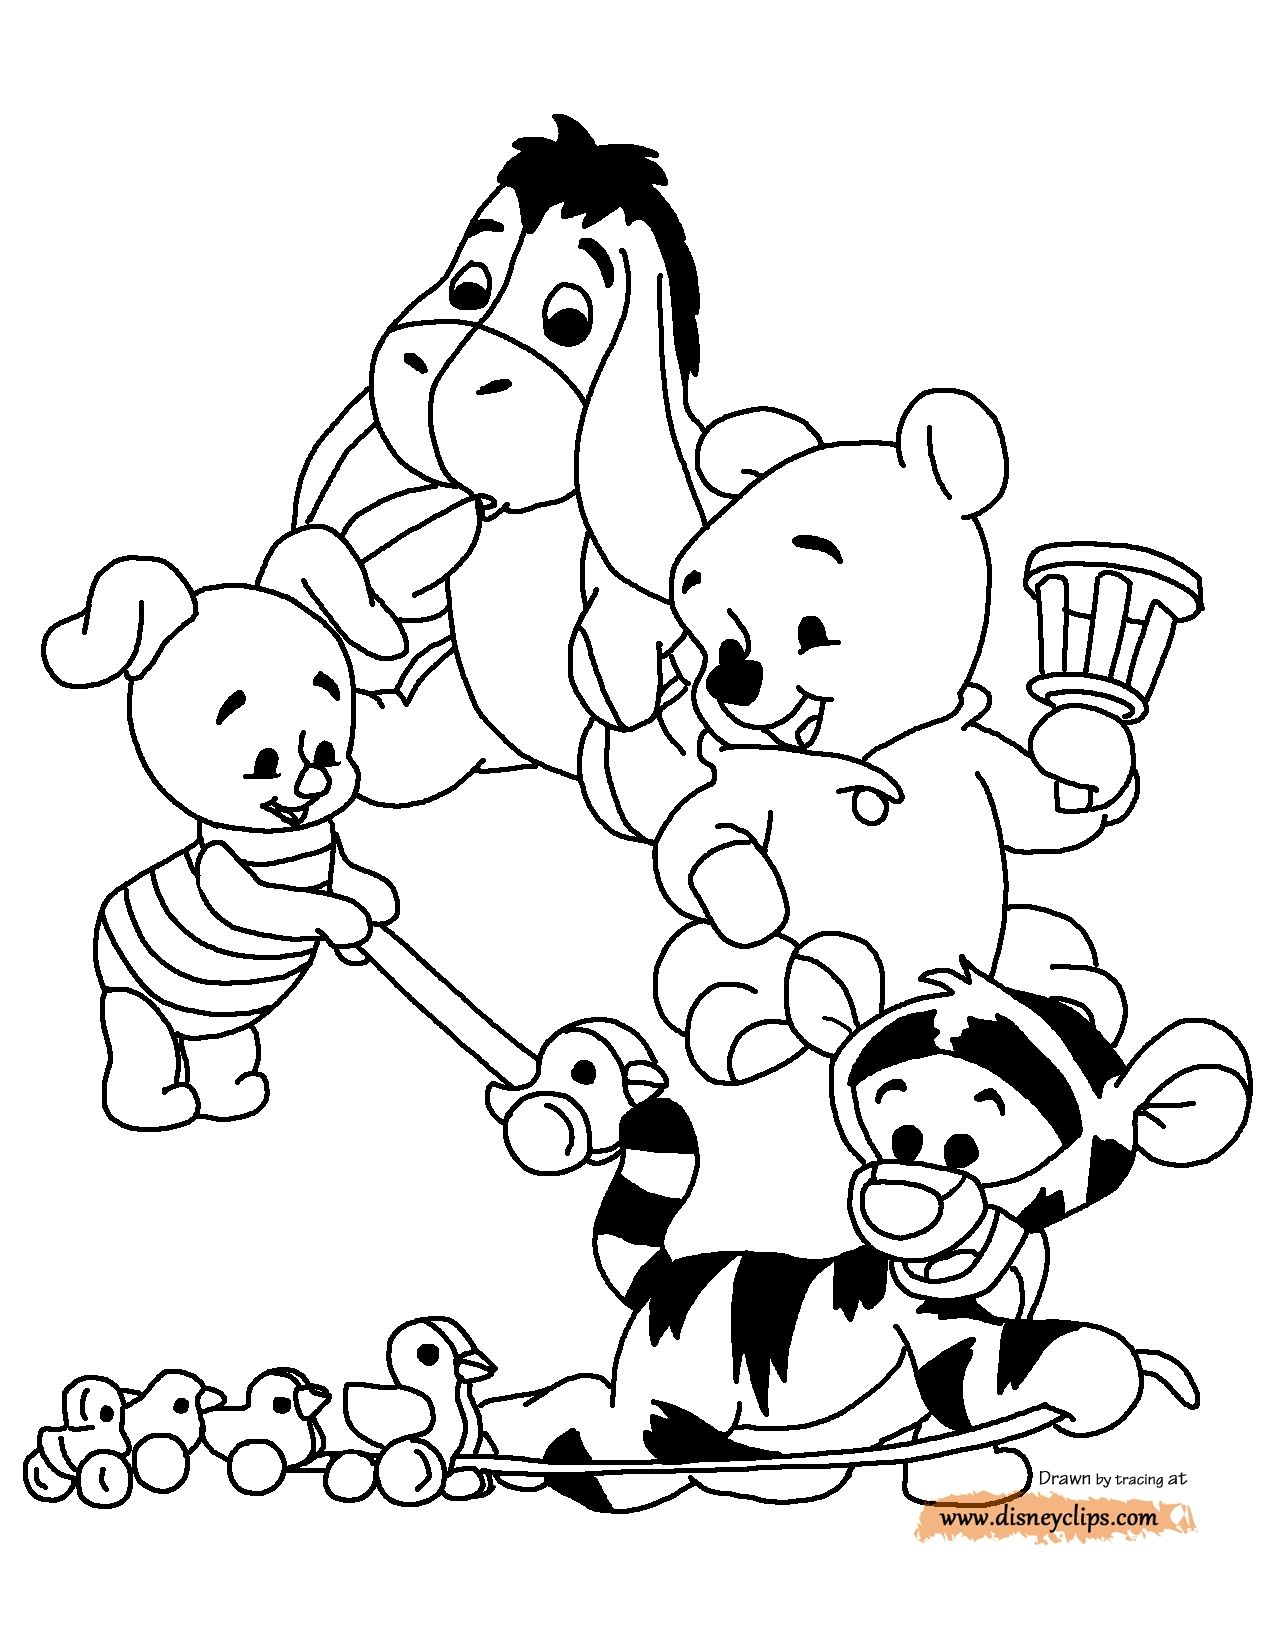 Cute Winnie The Pooh Coloring Pages Disney malvorlagen